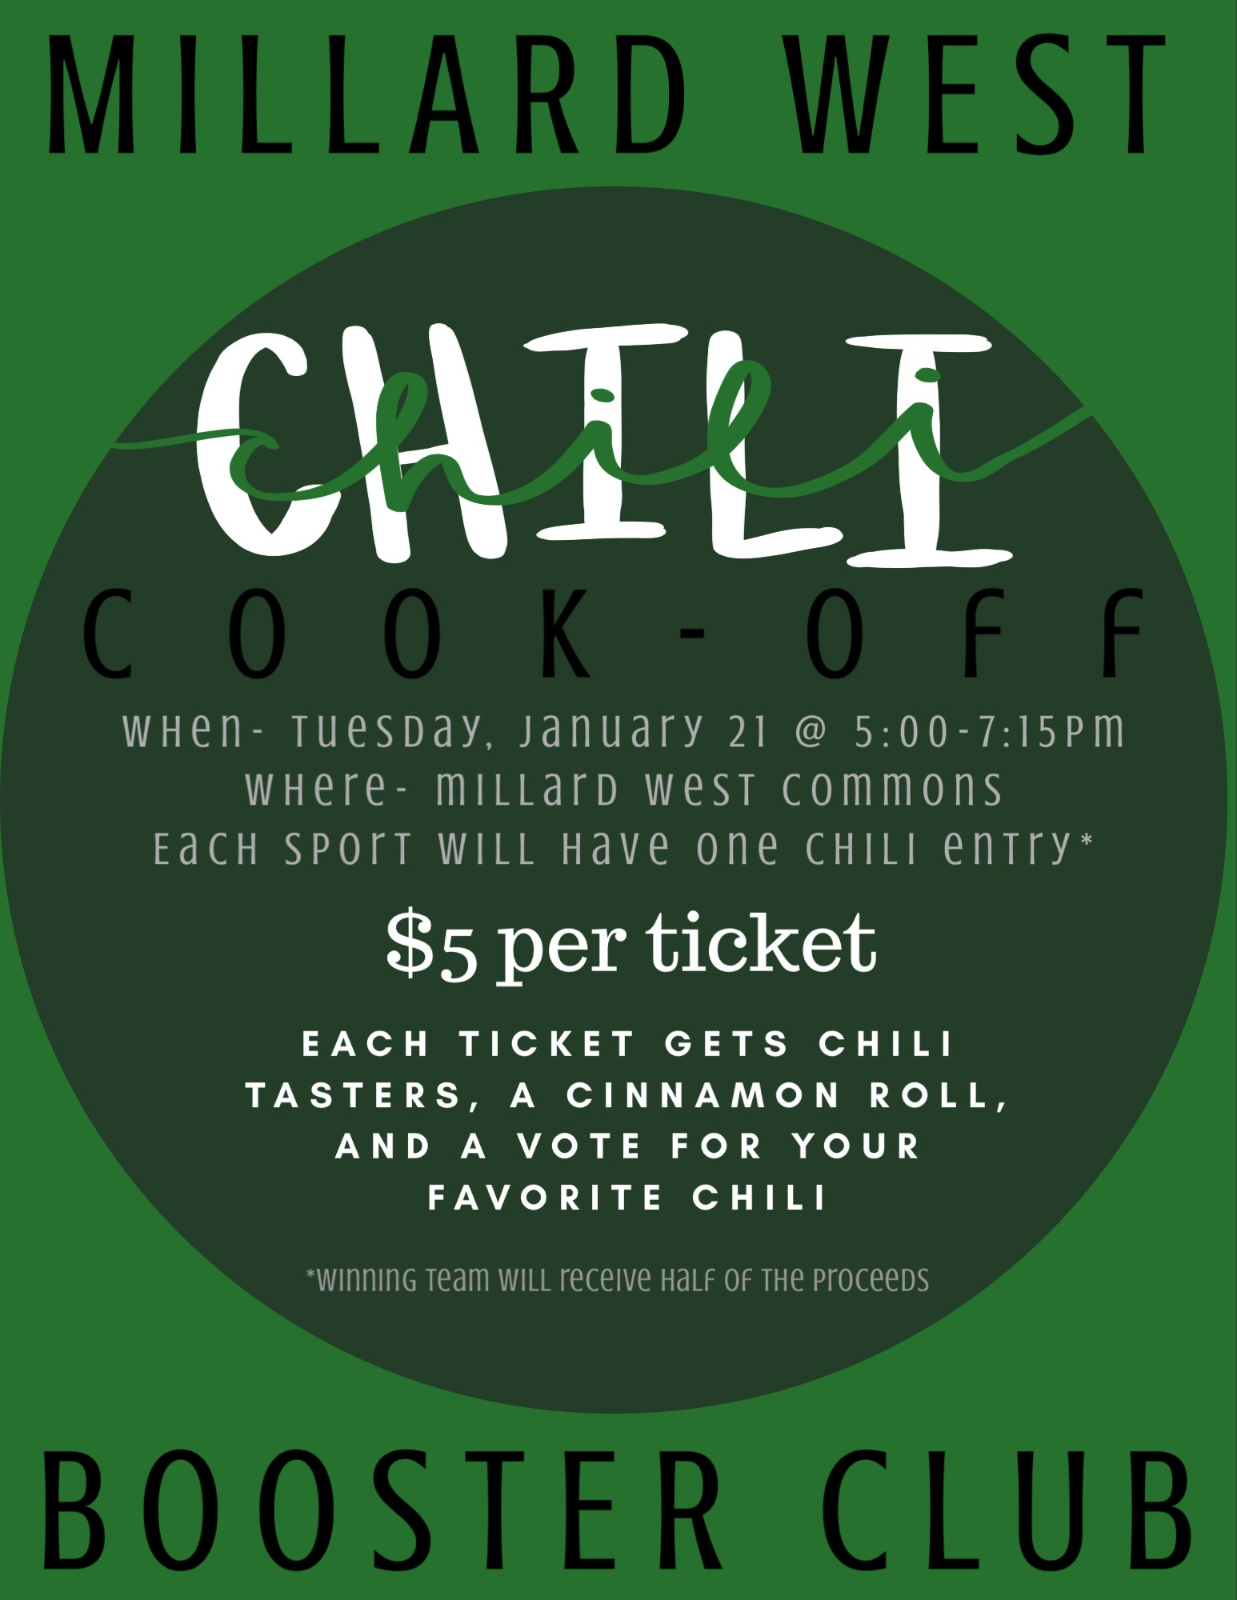 Booster Club Chili Cook-Off